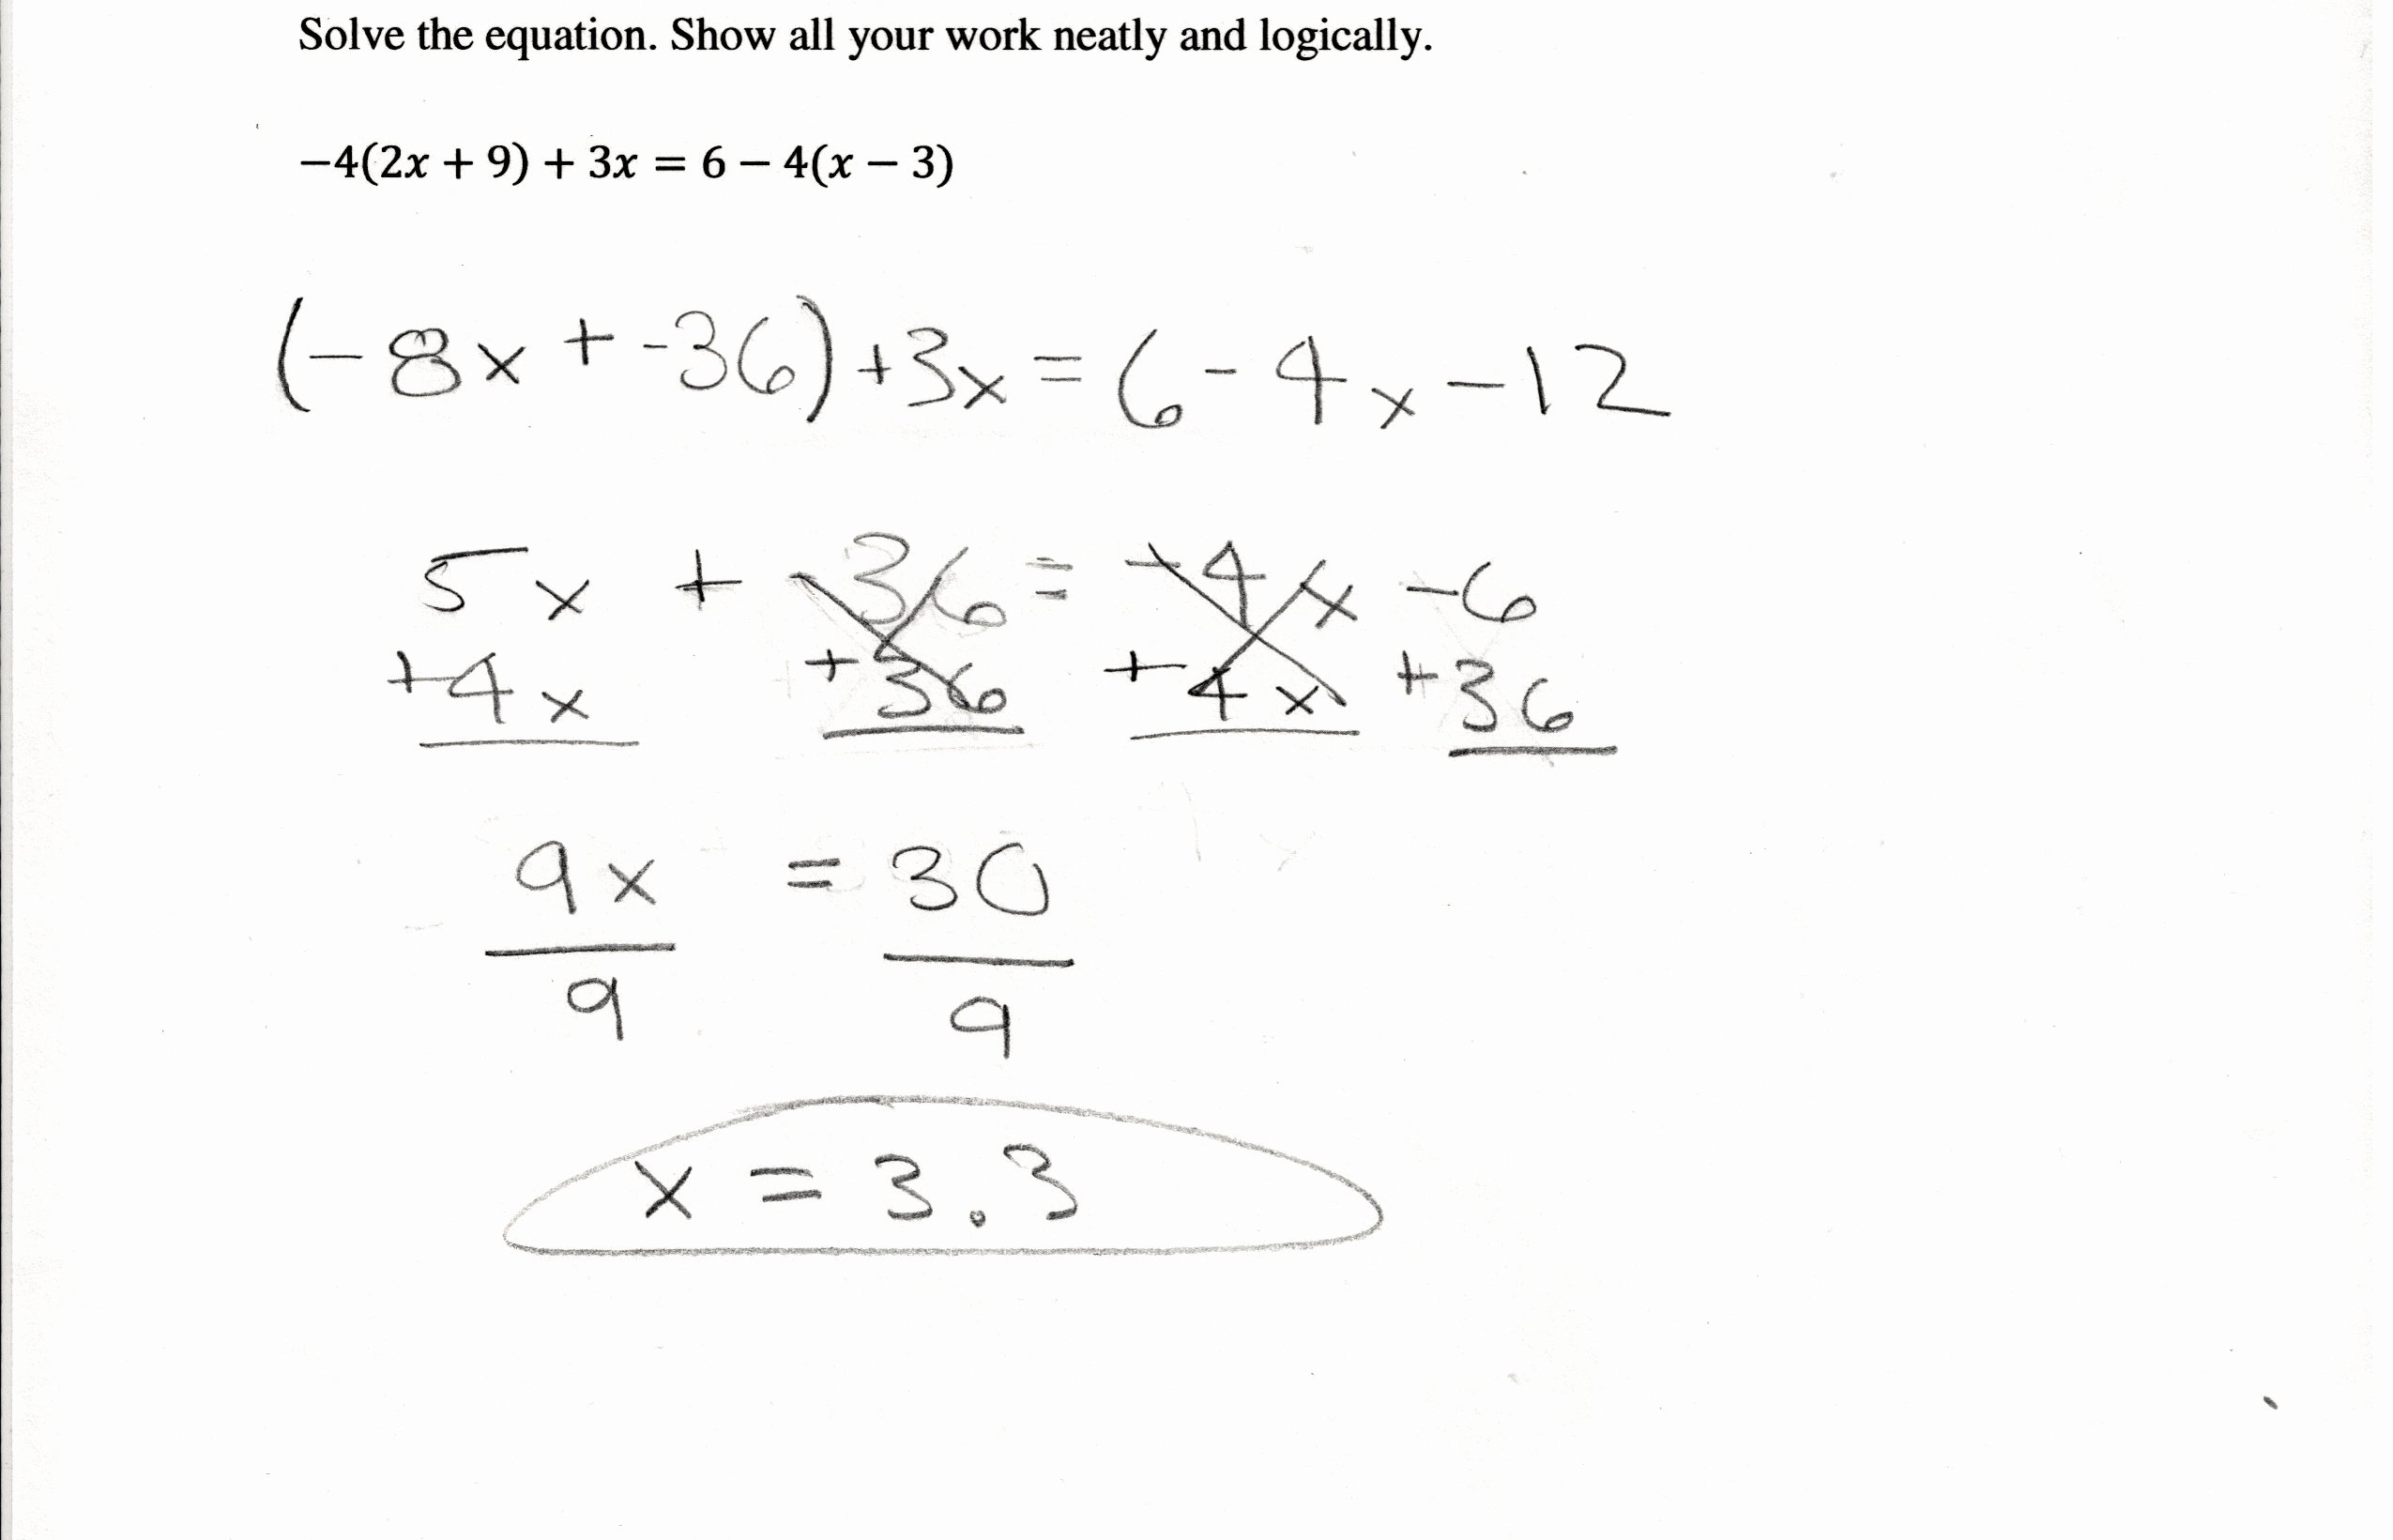 Linear Equations Worksheet Pdf Lovely Linear Equations In E Variable Worksheets for Class 8